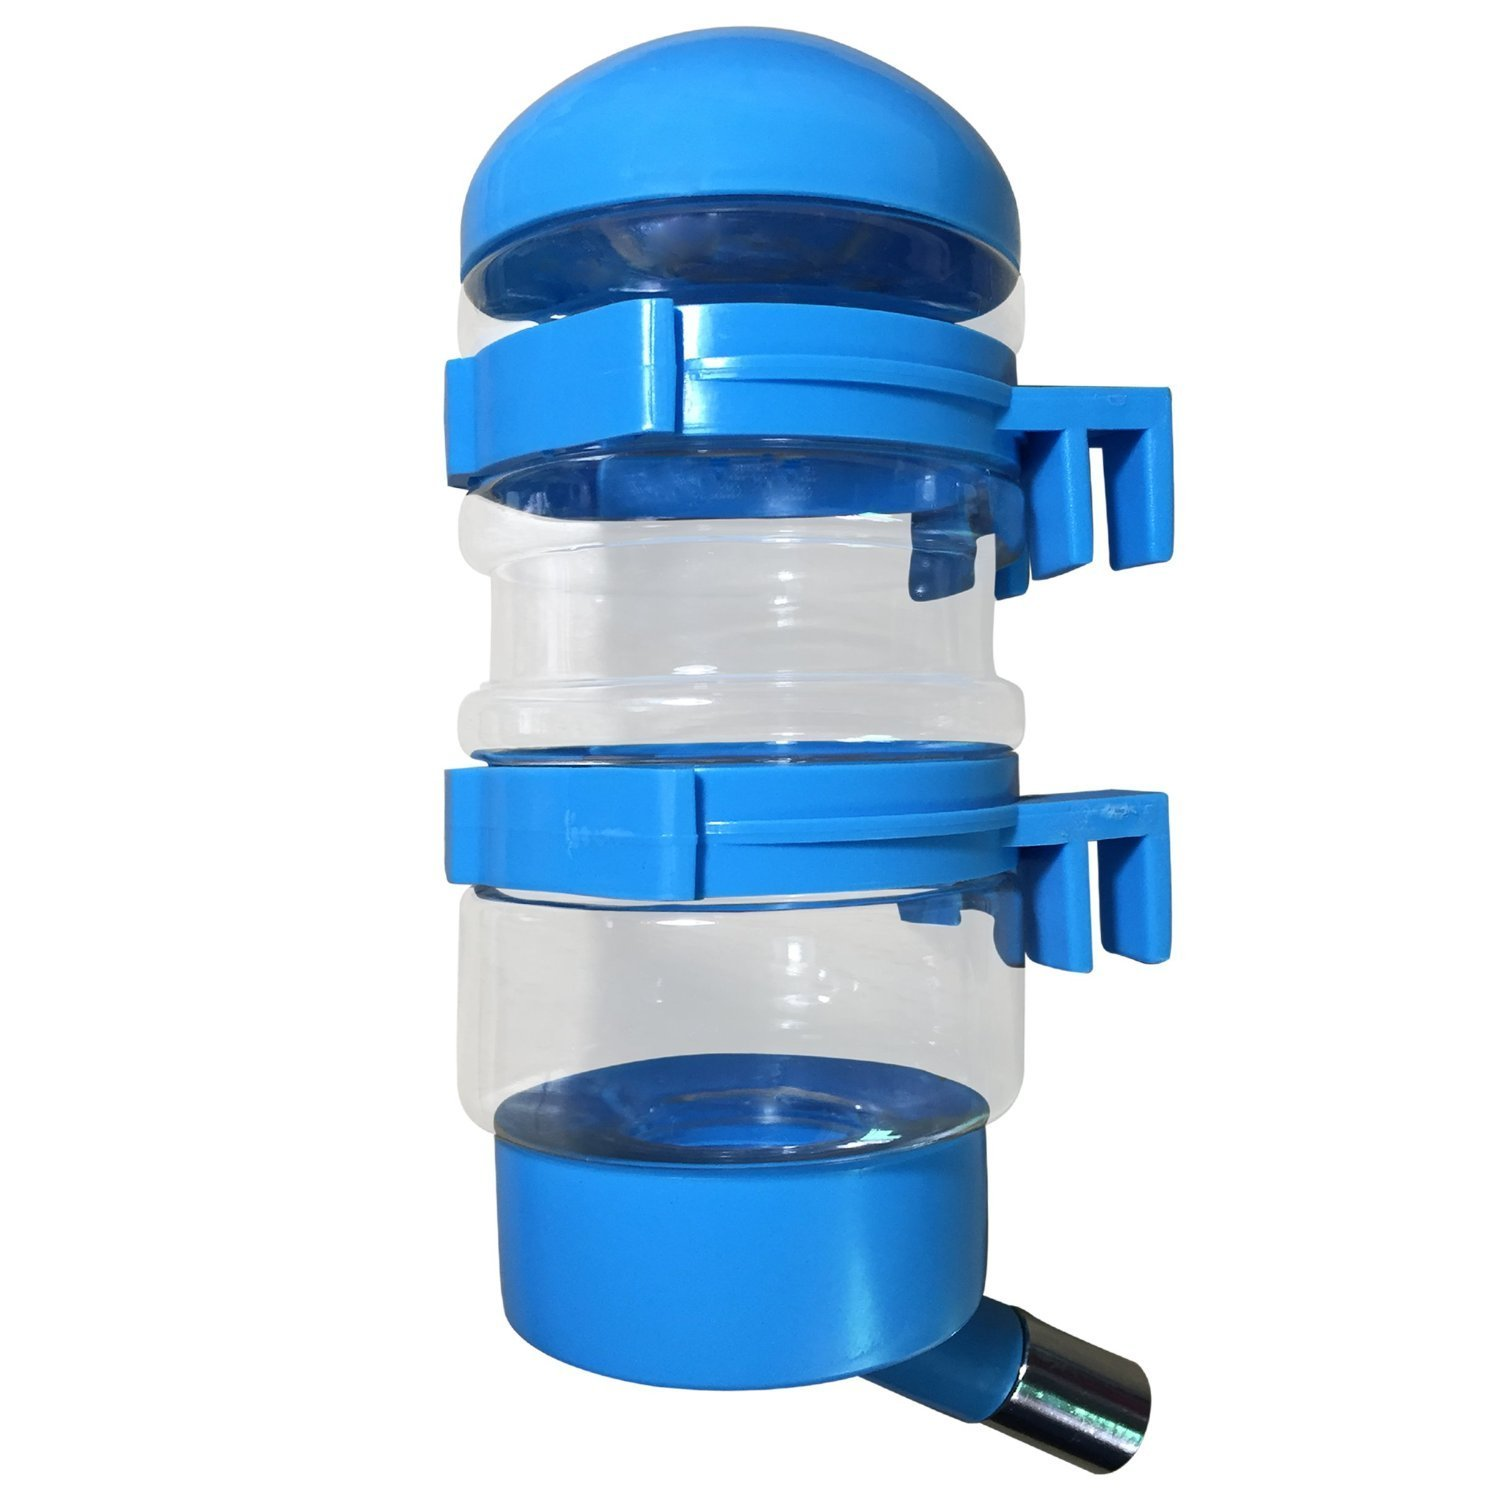 SatisPet Dog Water Dispenser in Blue 14 fl oz Water Bottle for Cats & Dogs - Leak-proof Fountain for Automatically Feeding Water That Hooks on the Pet's Crate Made of BPA Free Plastic